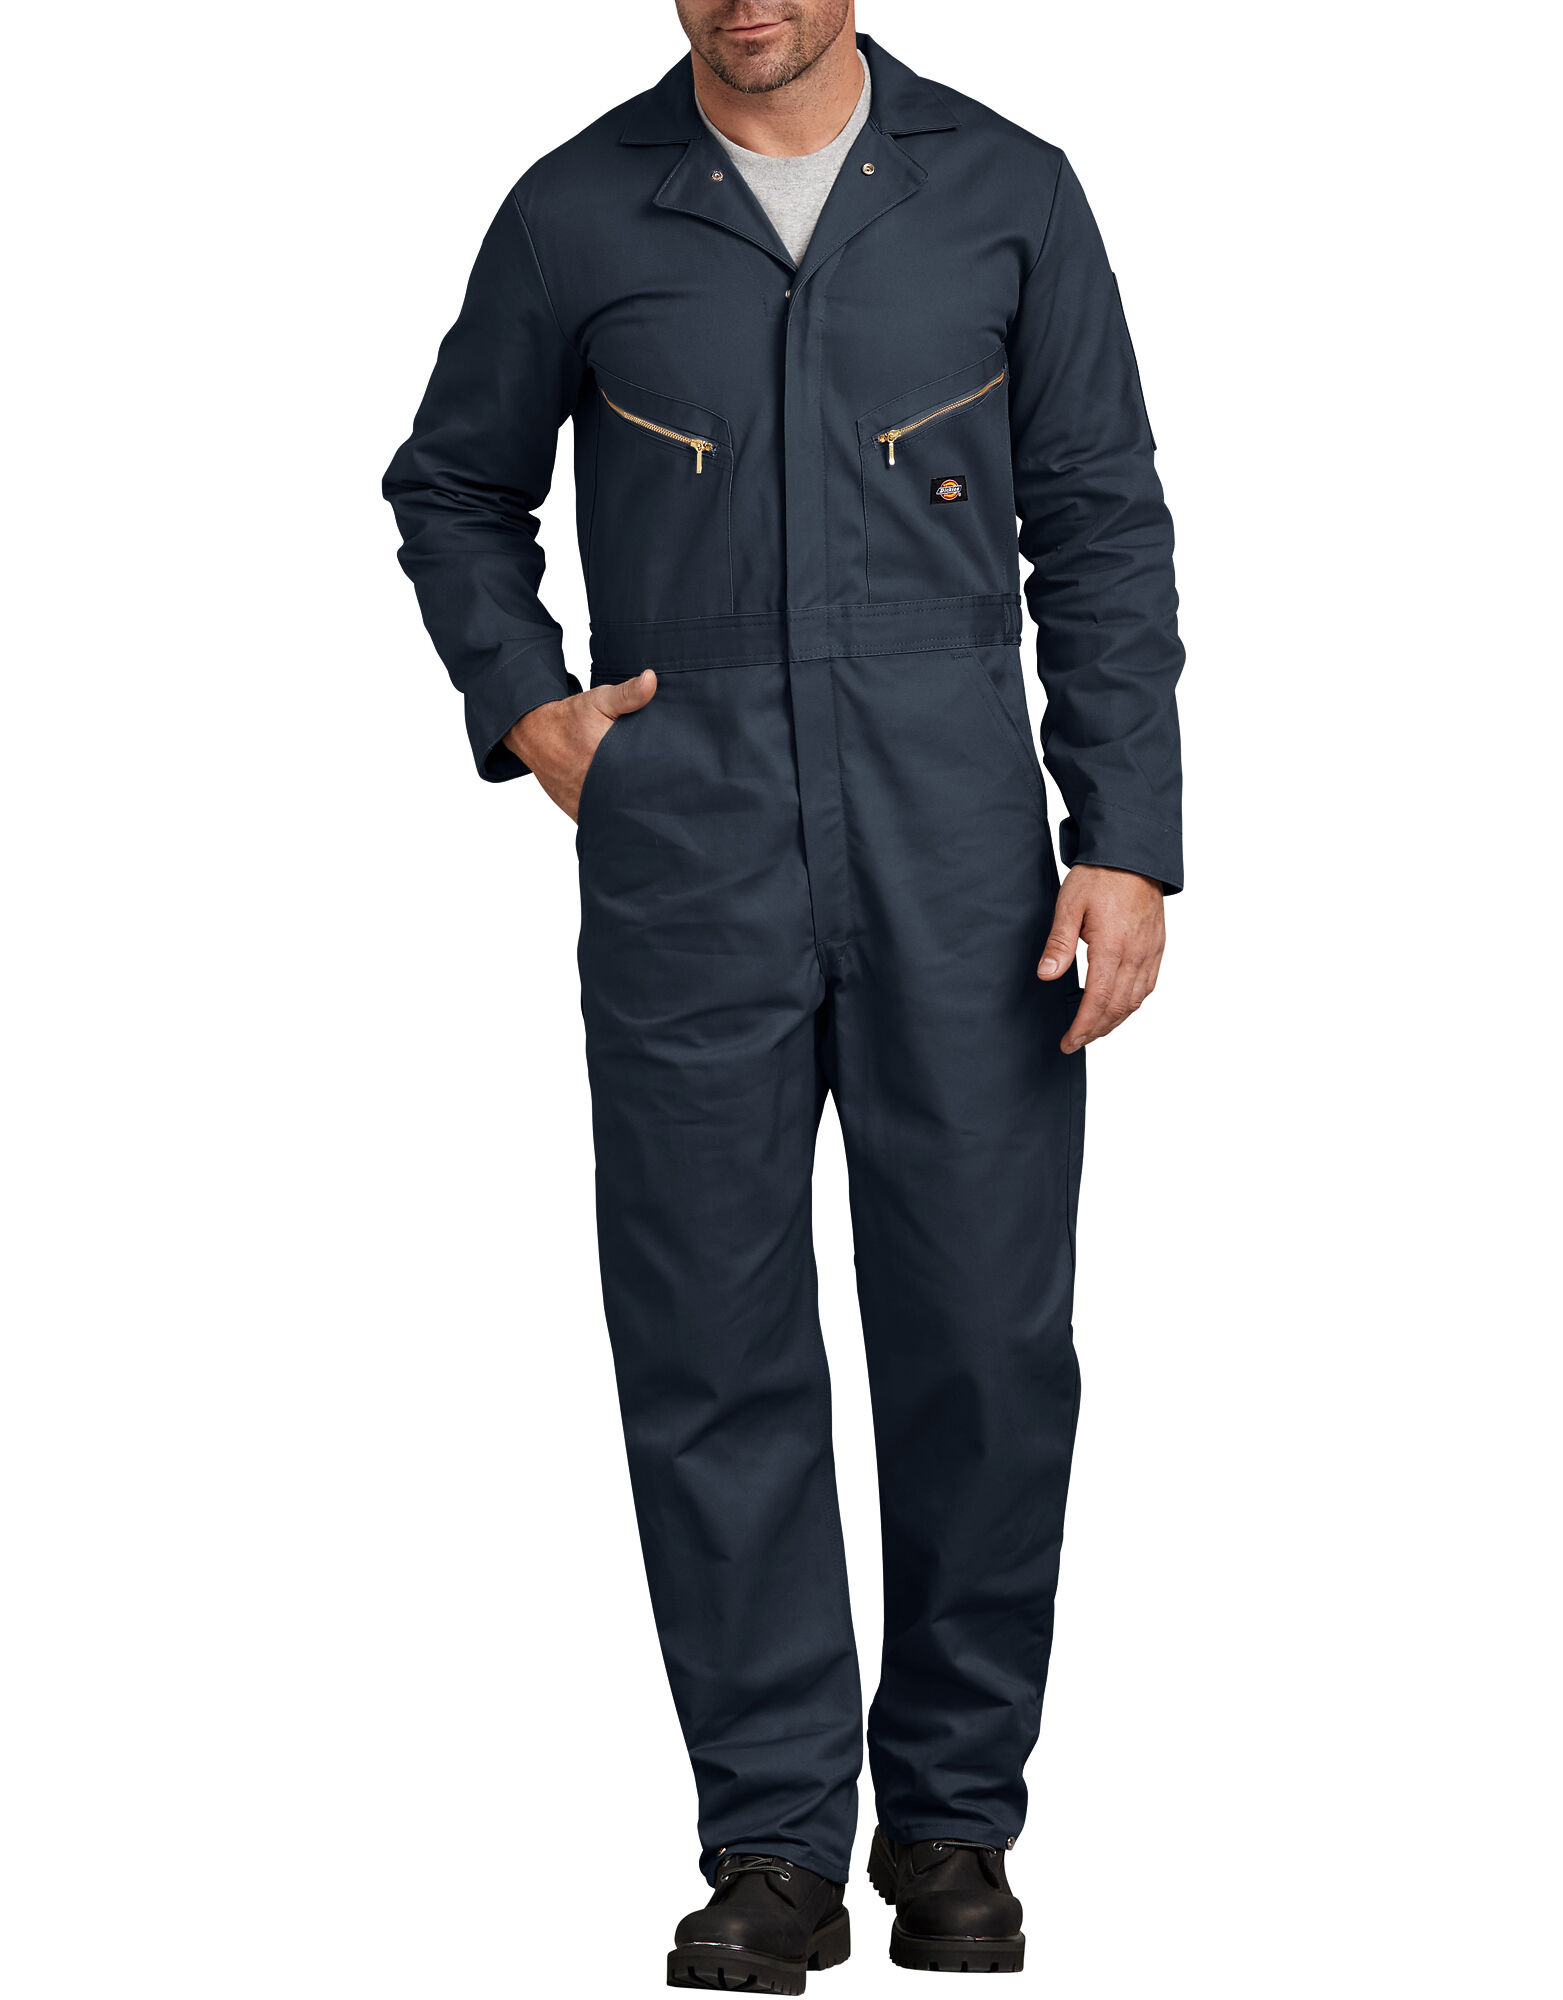 This offer goes into effect after all other discounts are taken and prior to Moisture-Wicking Clothing· Summer Cooling Technology· Made Tough for Any Job.